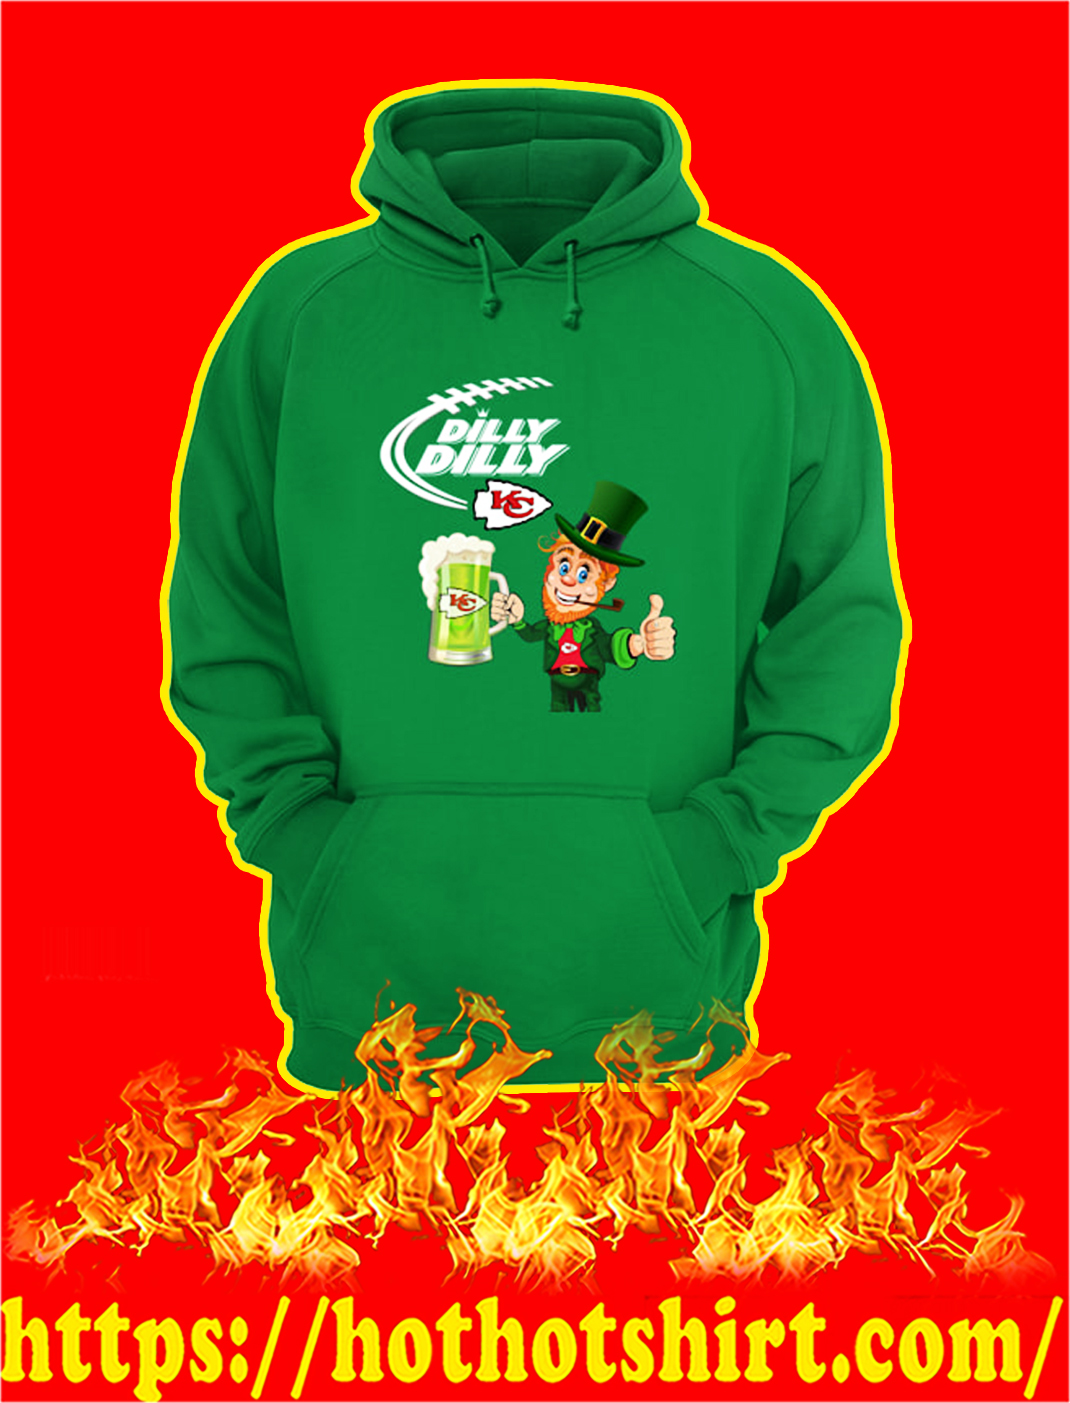 Dilly Dilly Chiefs Leprechaun St Patrick's Day hoodie